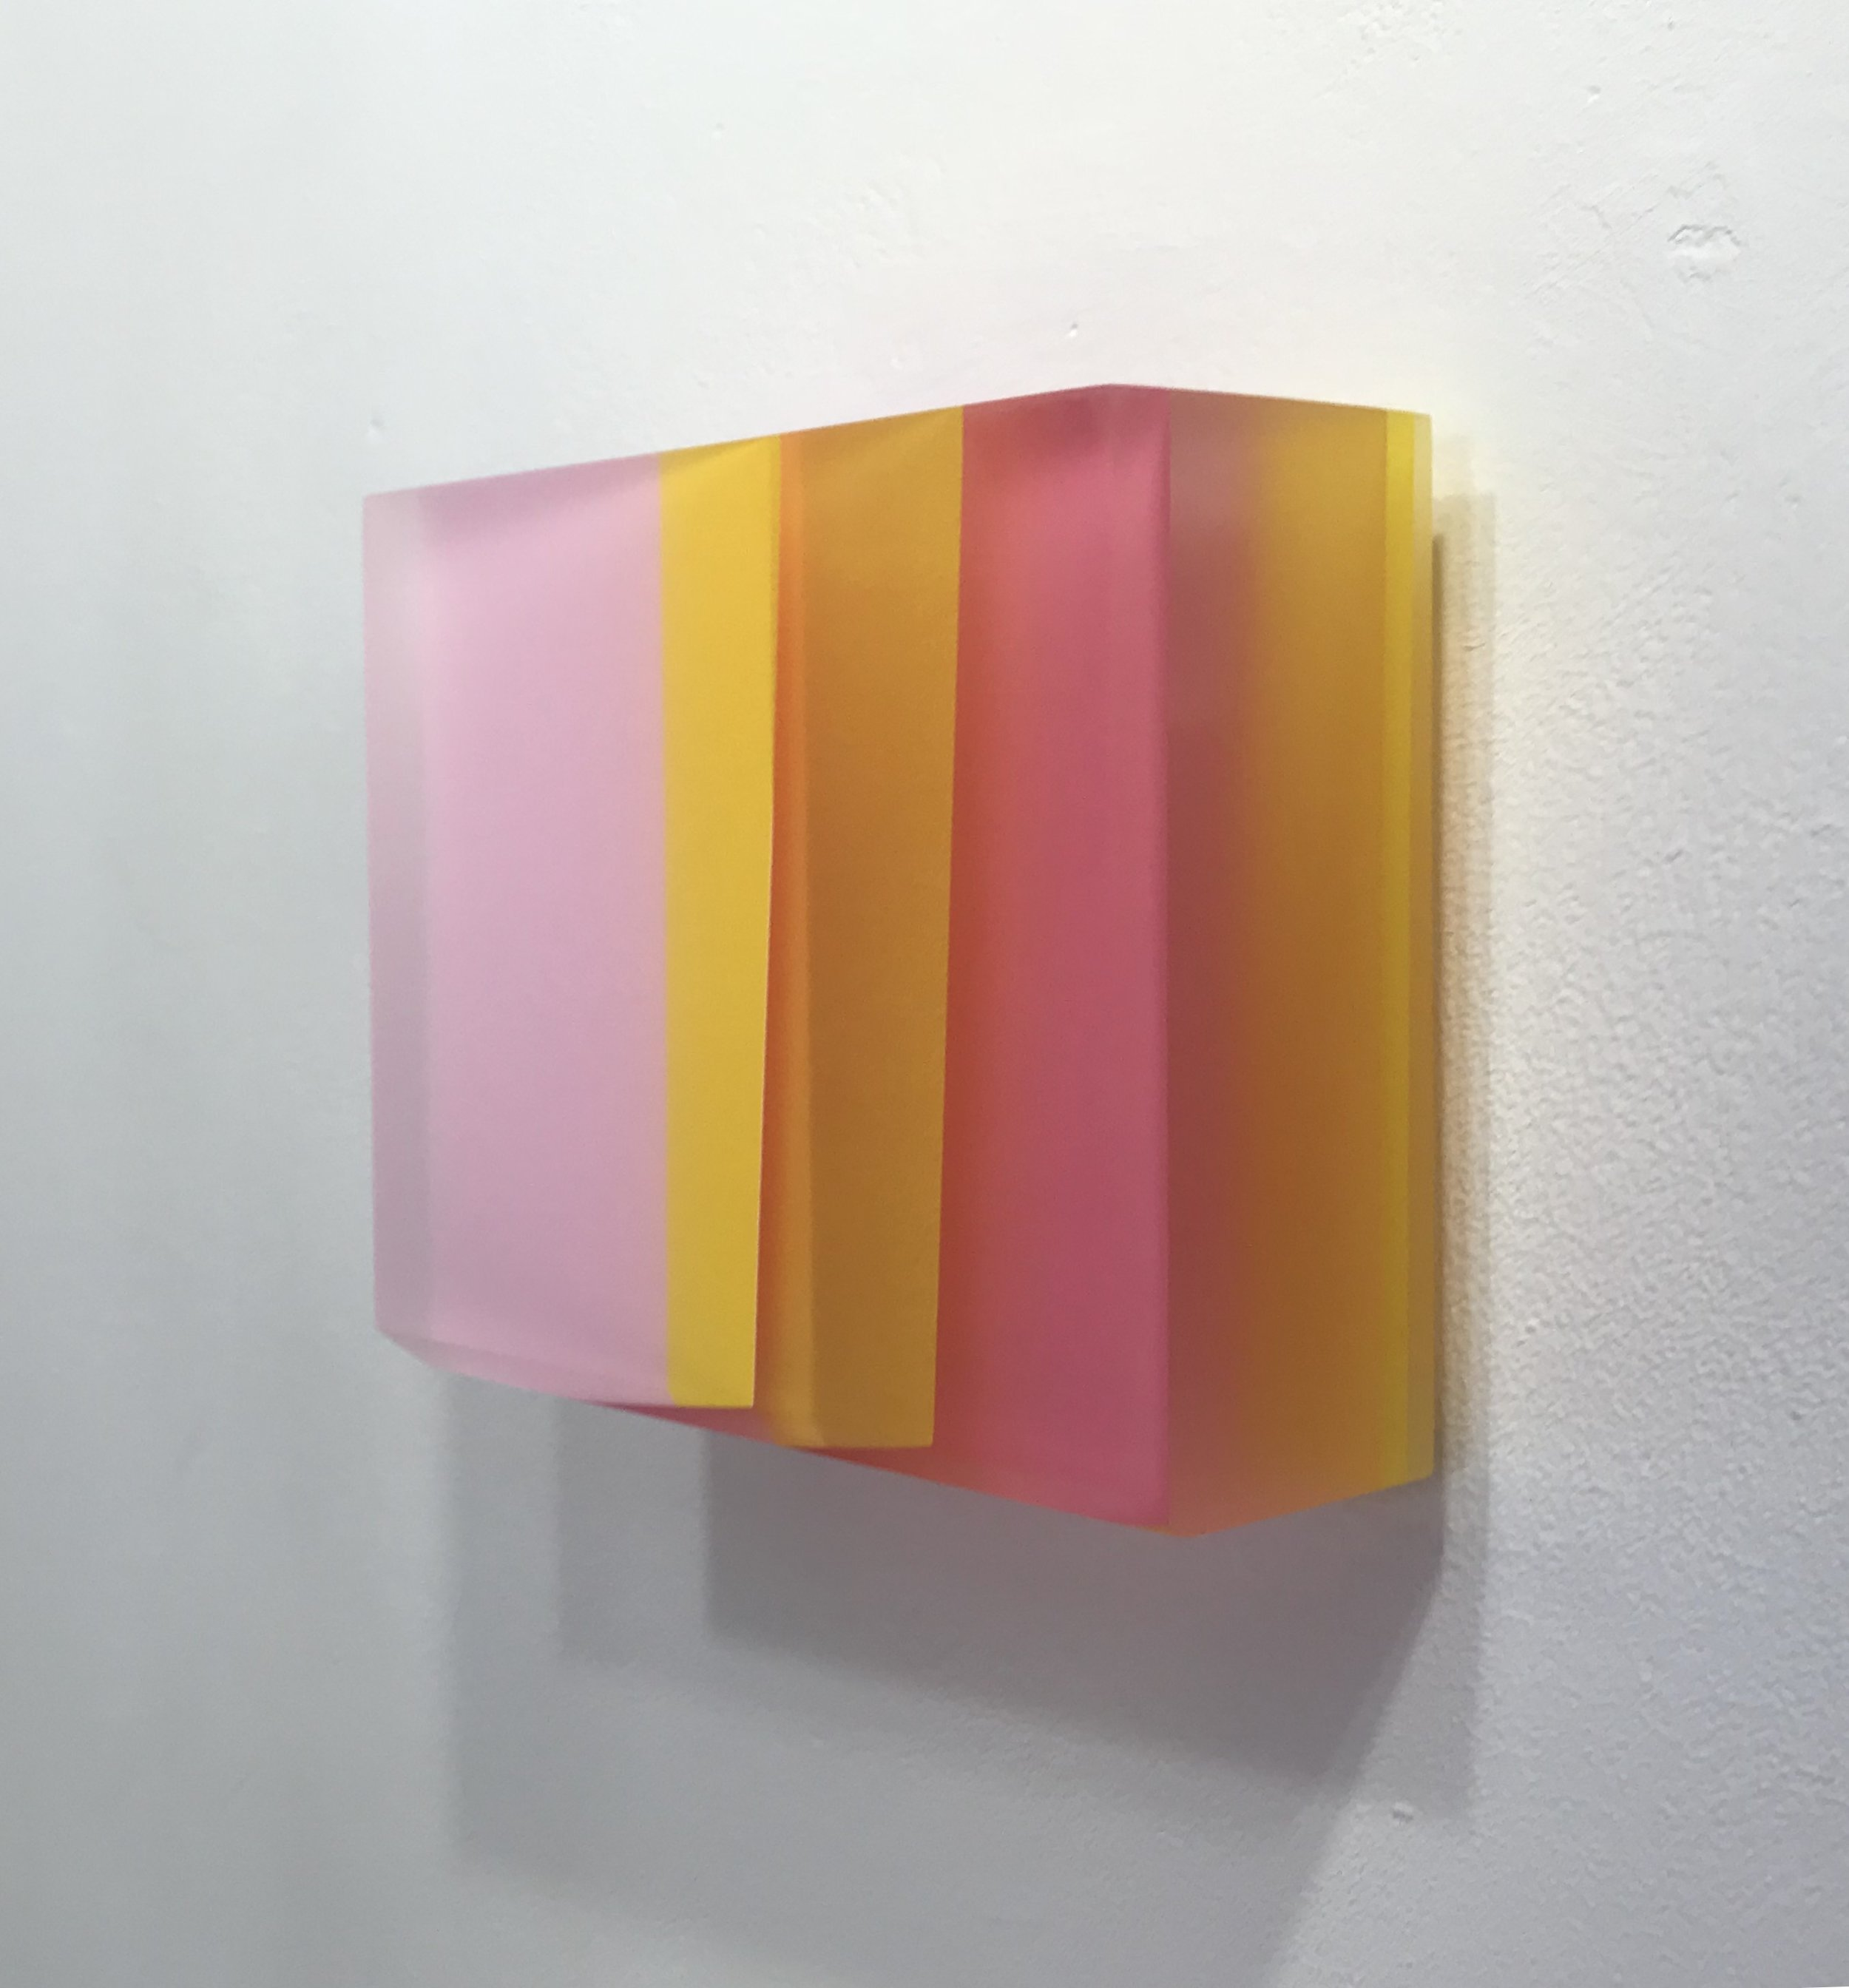 "Michelle Benoit, ""Sky brick series"", 2018. Mixed media on lucite and apple ply. 6.25x6.75 in."